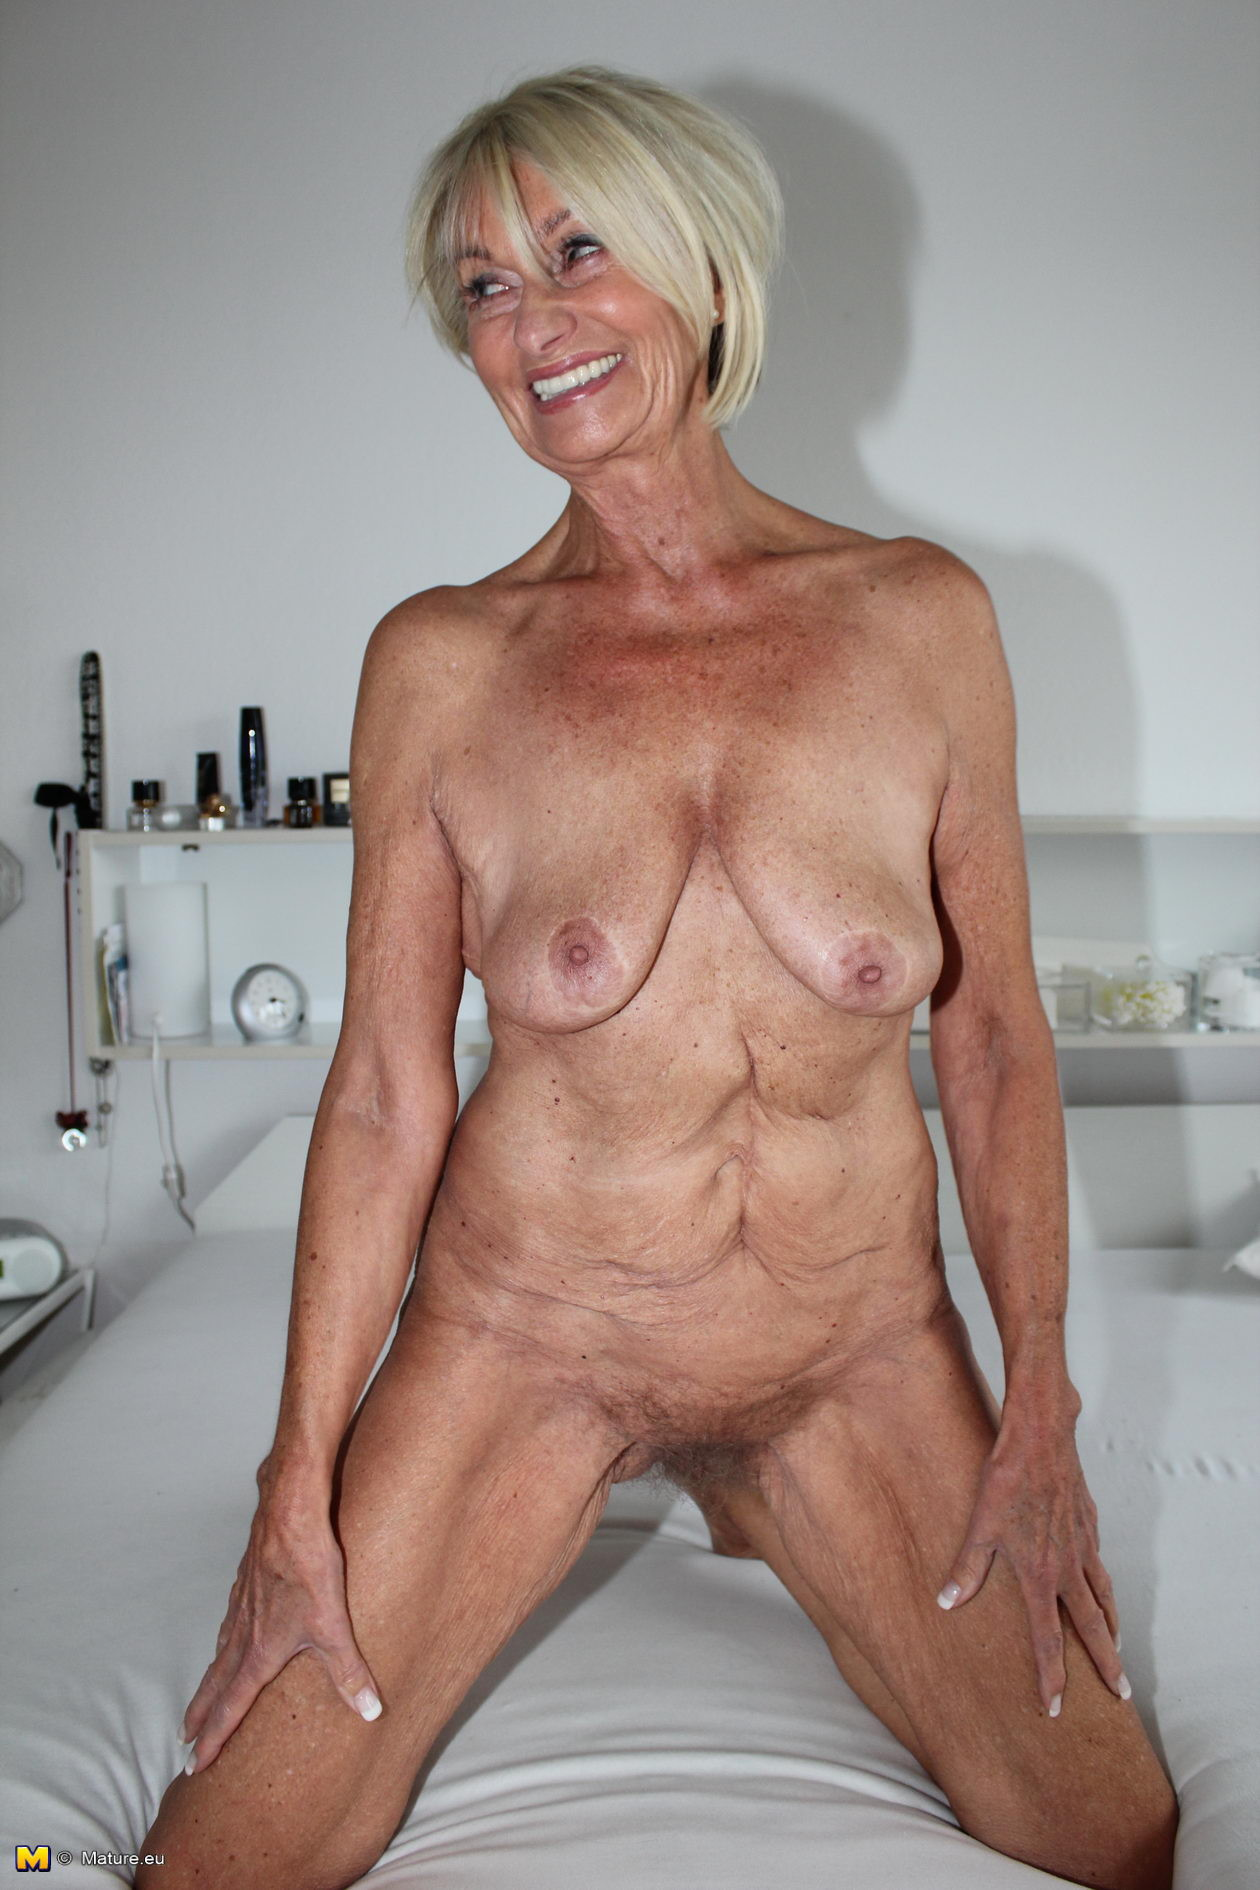 Share Ugly old naked granny